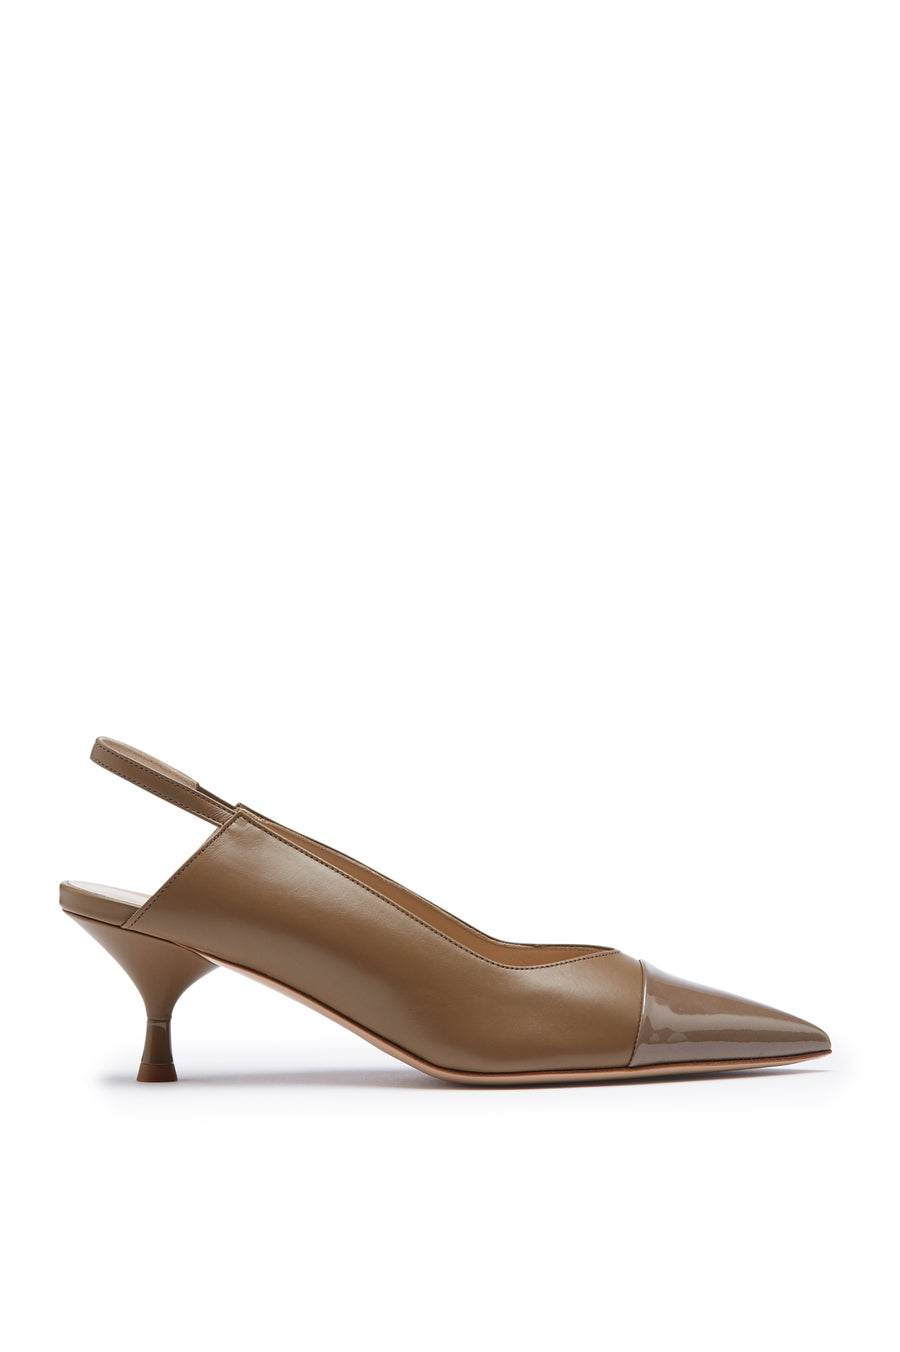 Slingback 5.5 is a pointed Italian leather heel. It features a patent toe cap. Heel height approx 2.2 inches. Color Nude Trench